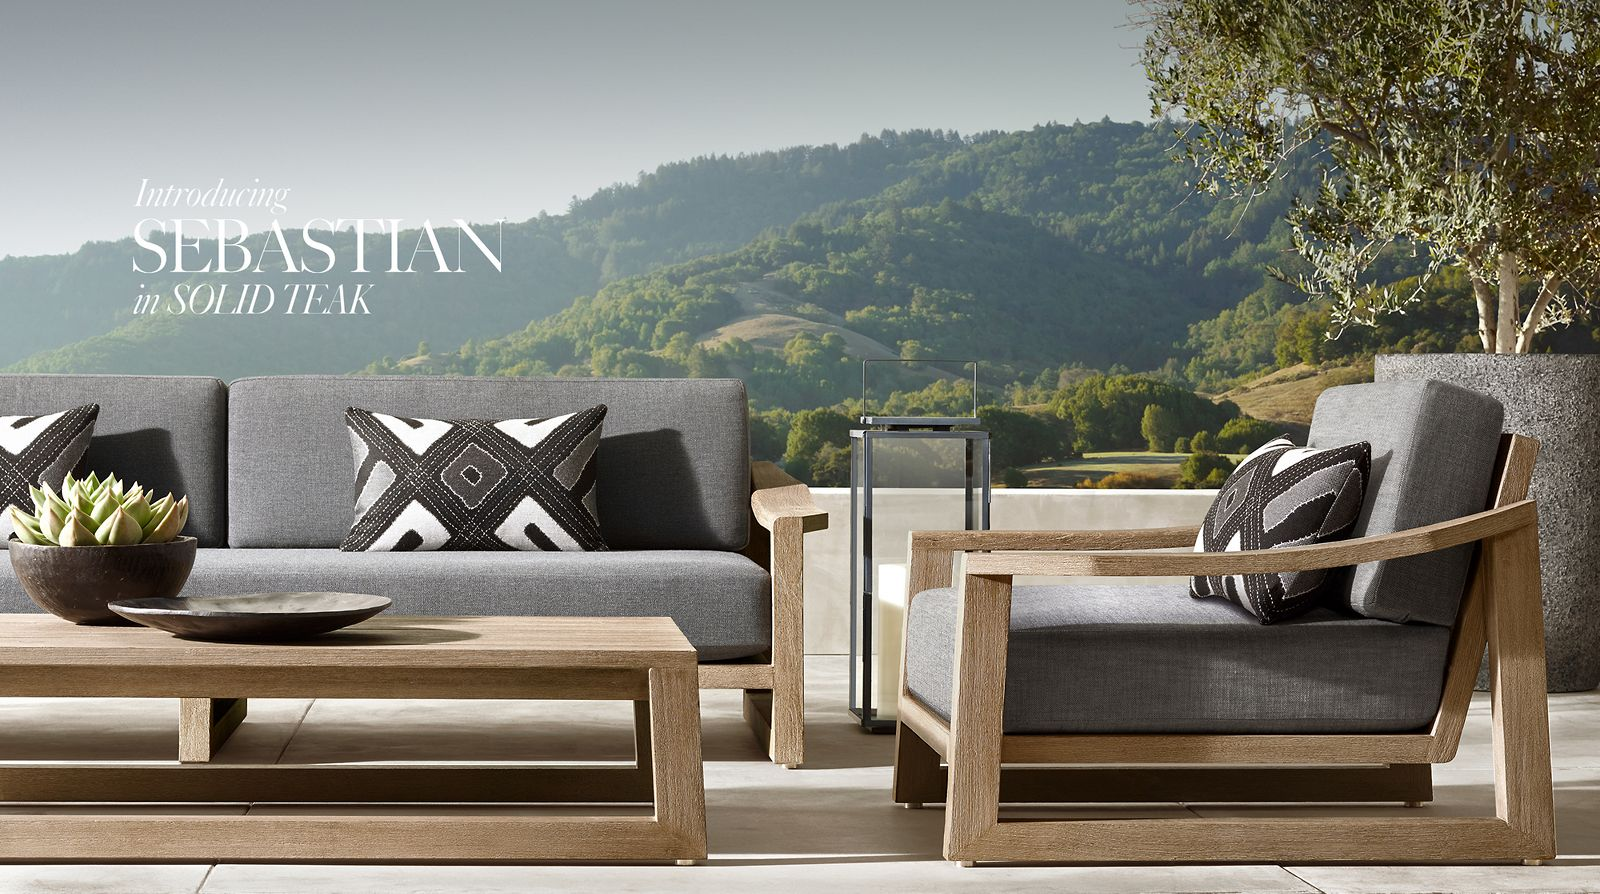 Explore rh outdoor collections · explore rh outdoor collections